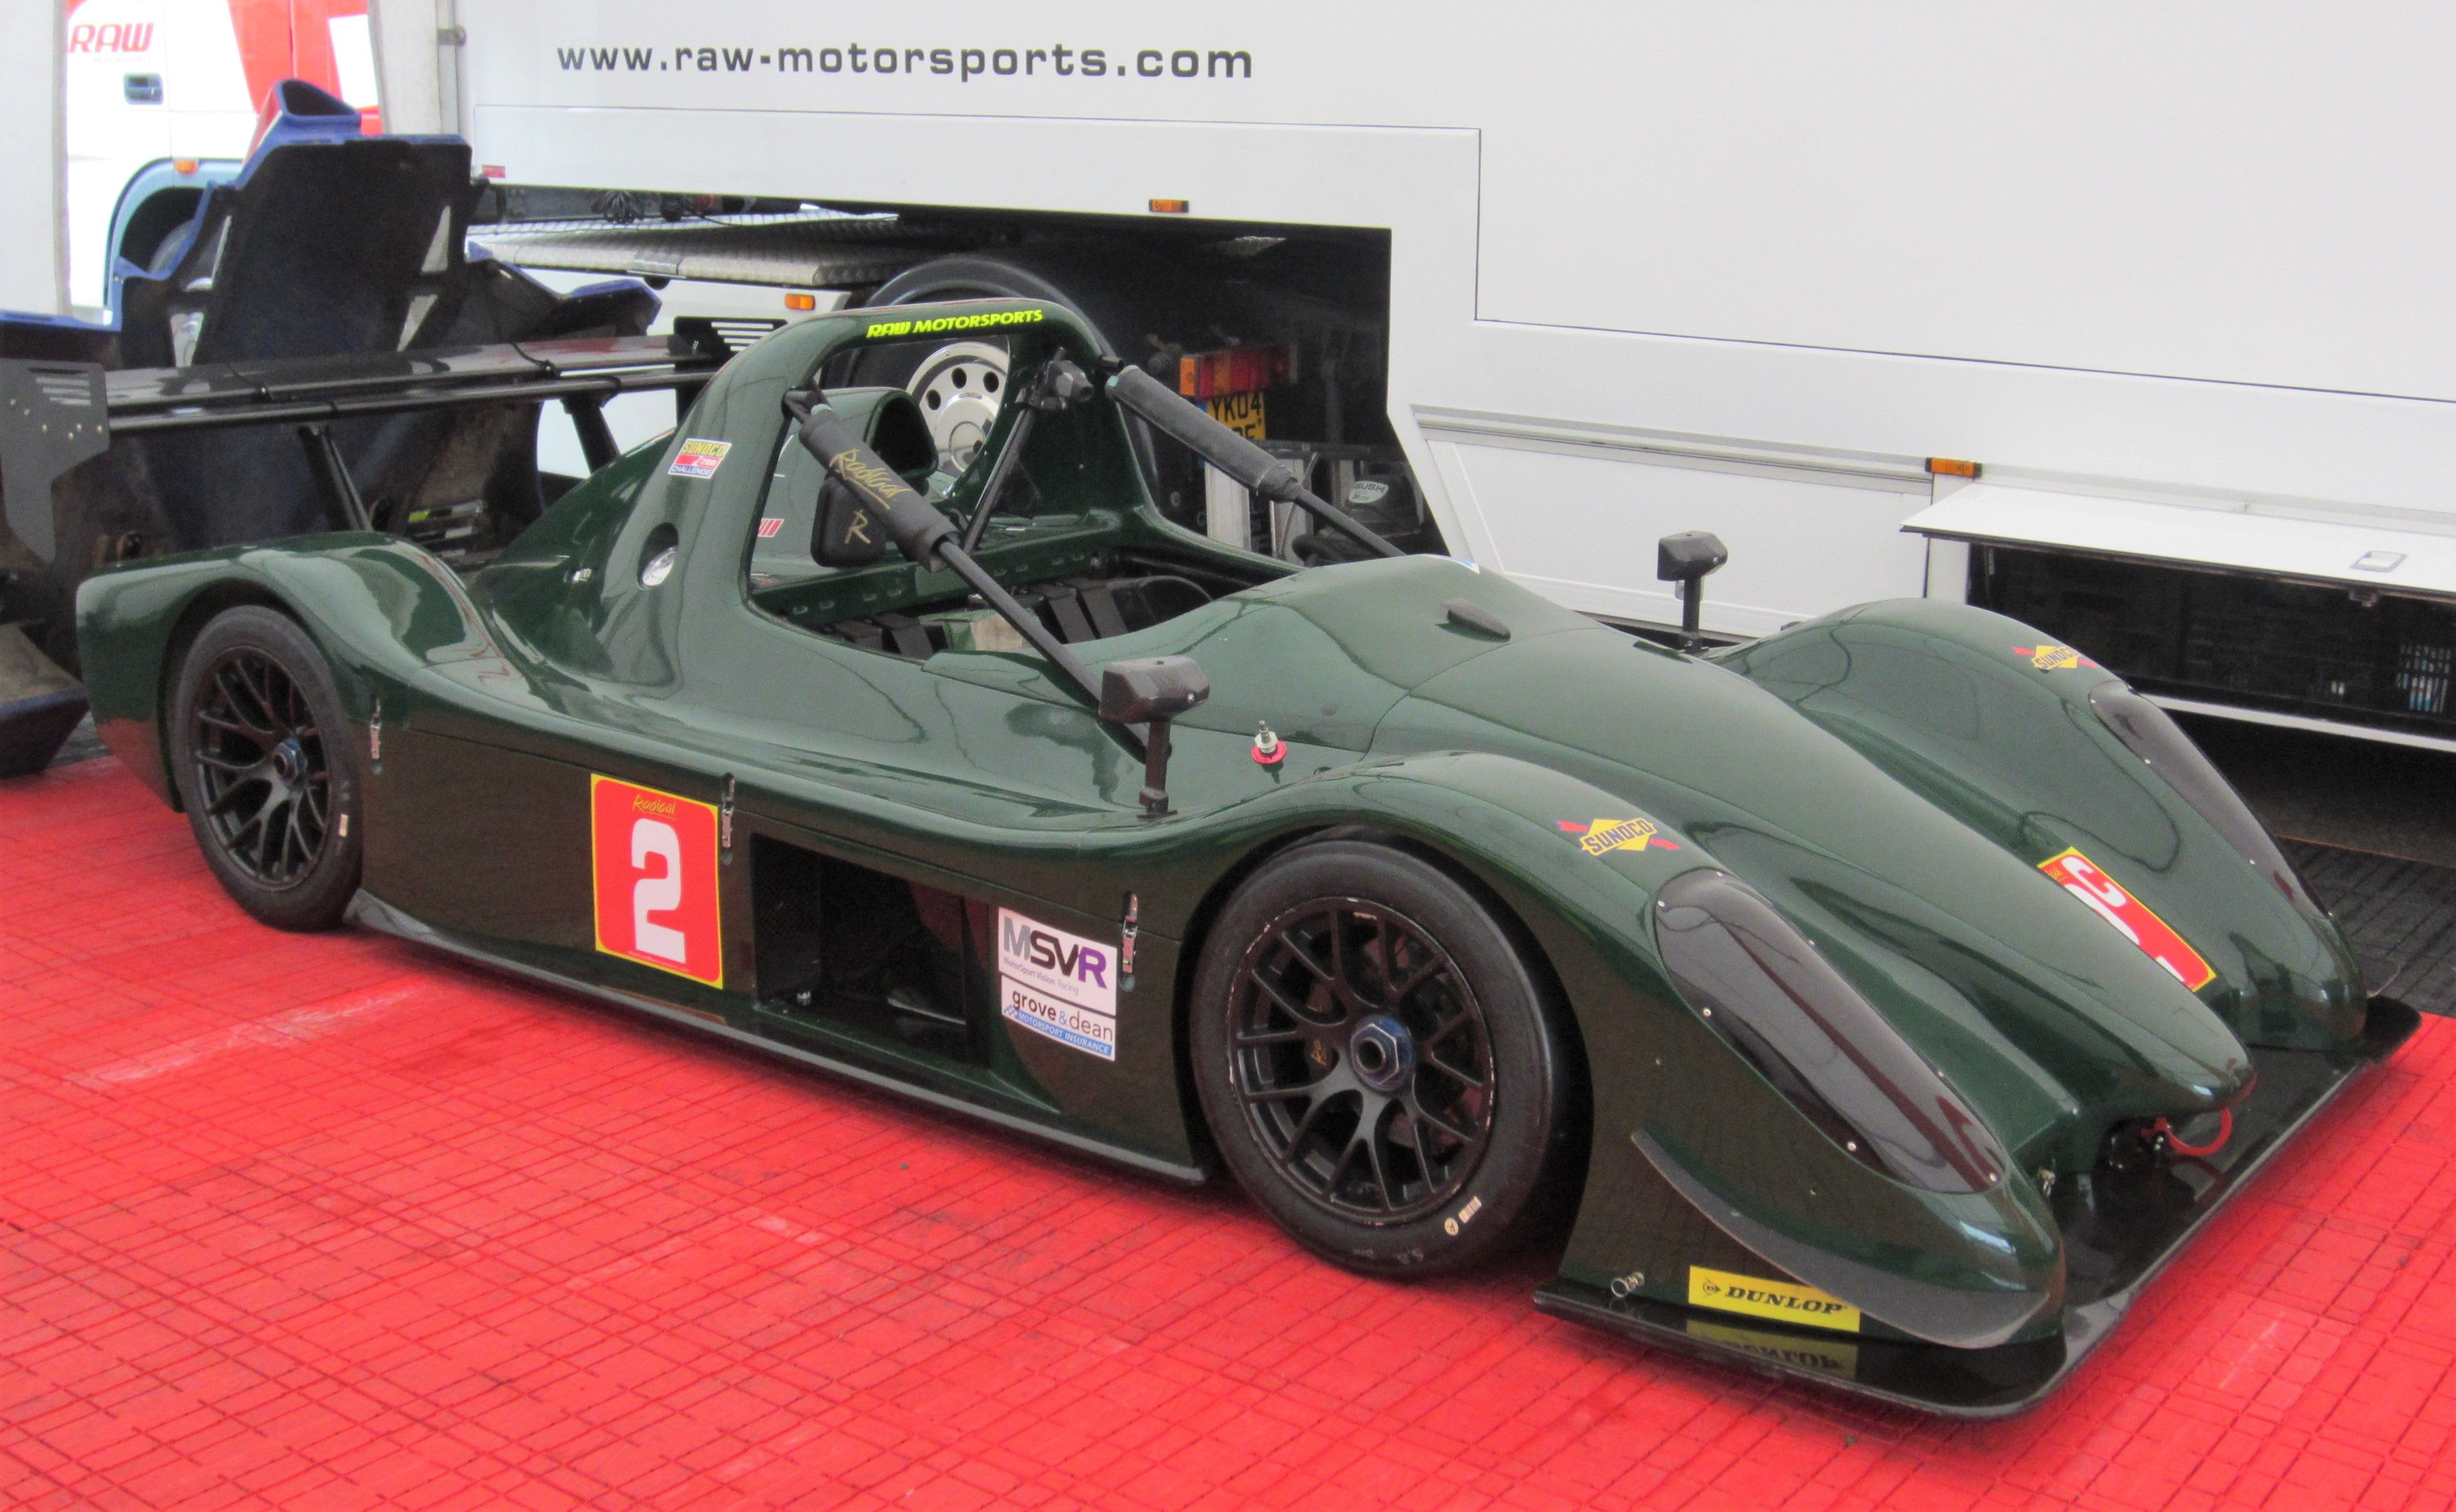 Radical SR3 -Radical Clubmans Cup, Supersports class    Racing